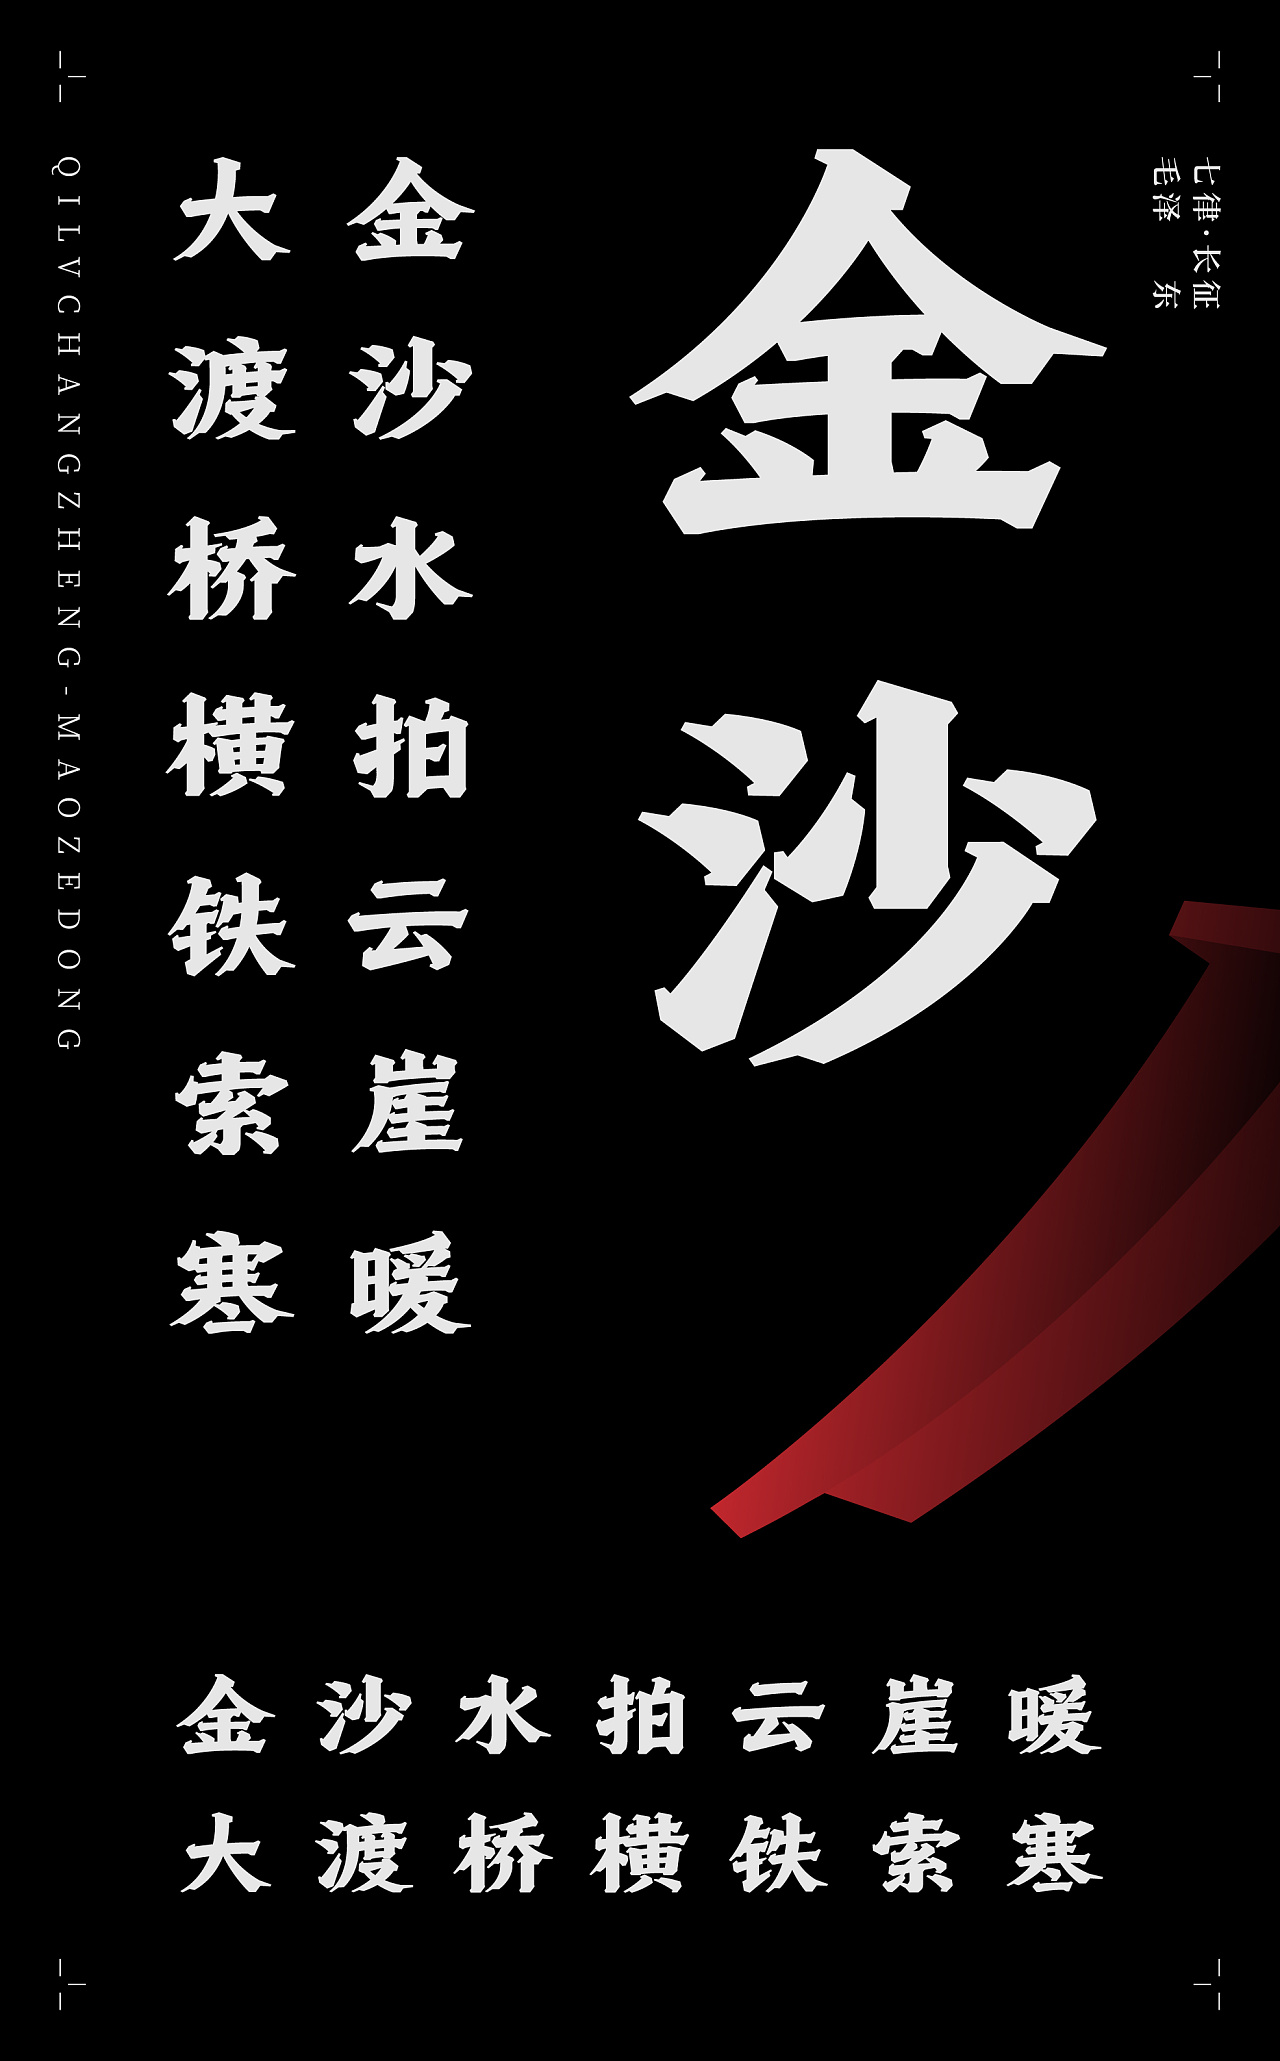 Chinese Creative Font Design-Font Design of Ancient Poems-Seven Rhymes and Long March